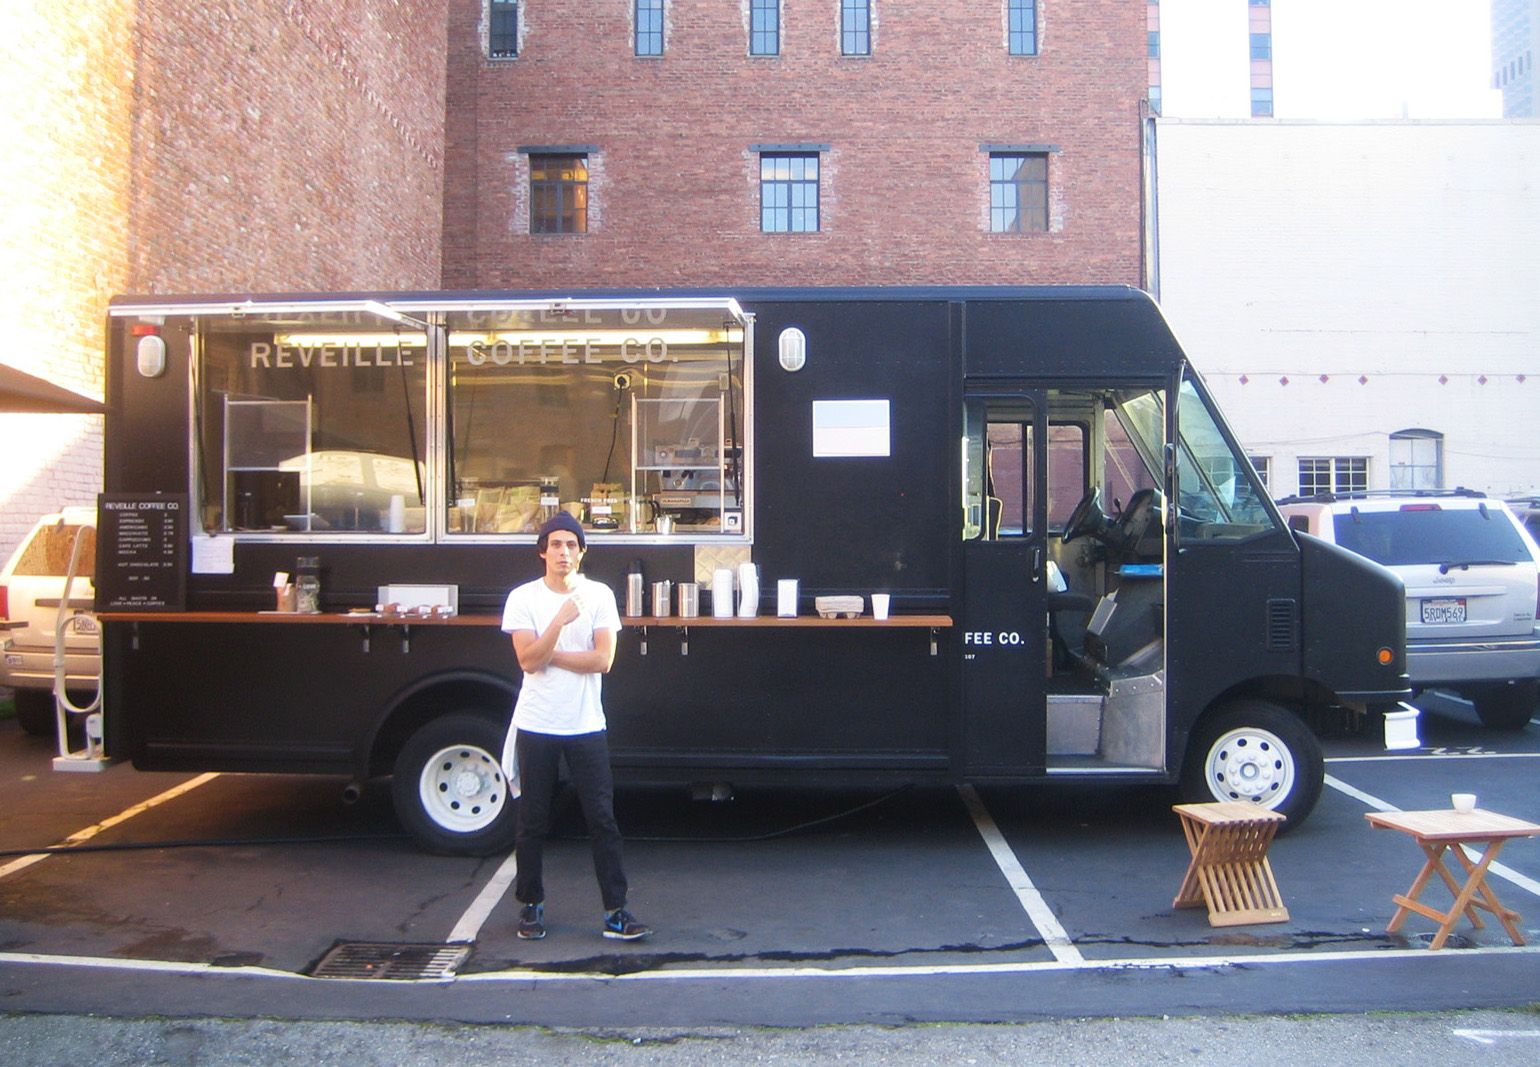 Alchemy Coffee Food Truck Réveille Coffee Company Truck Architecture Interior